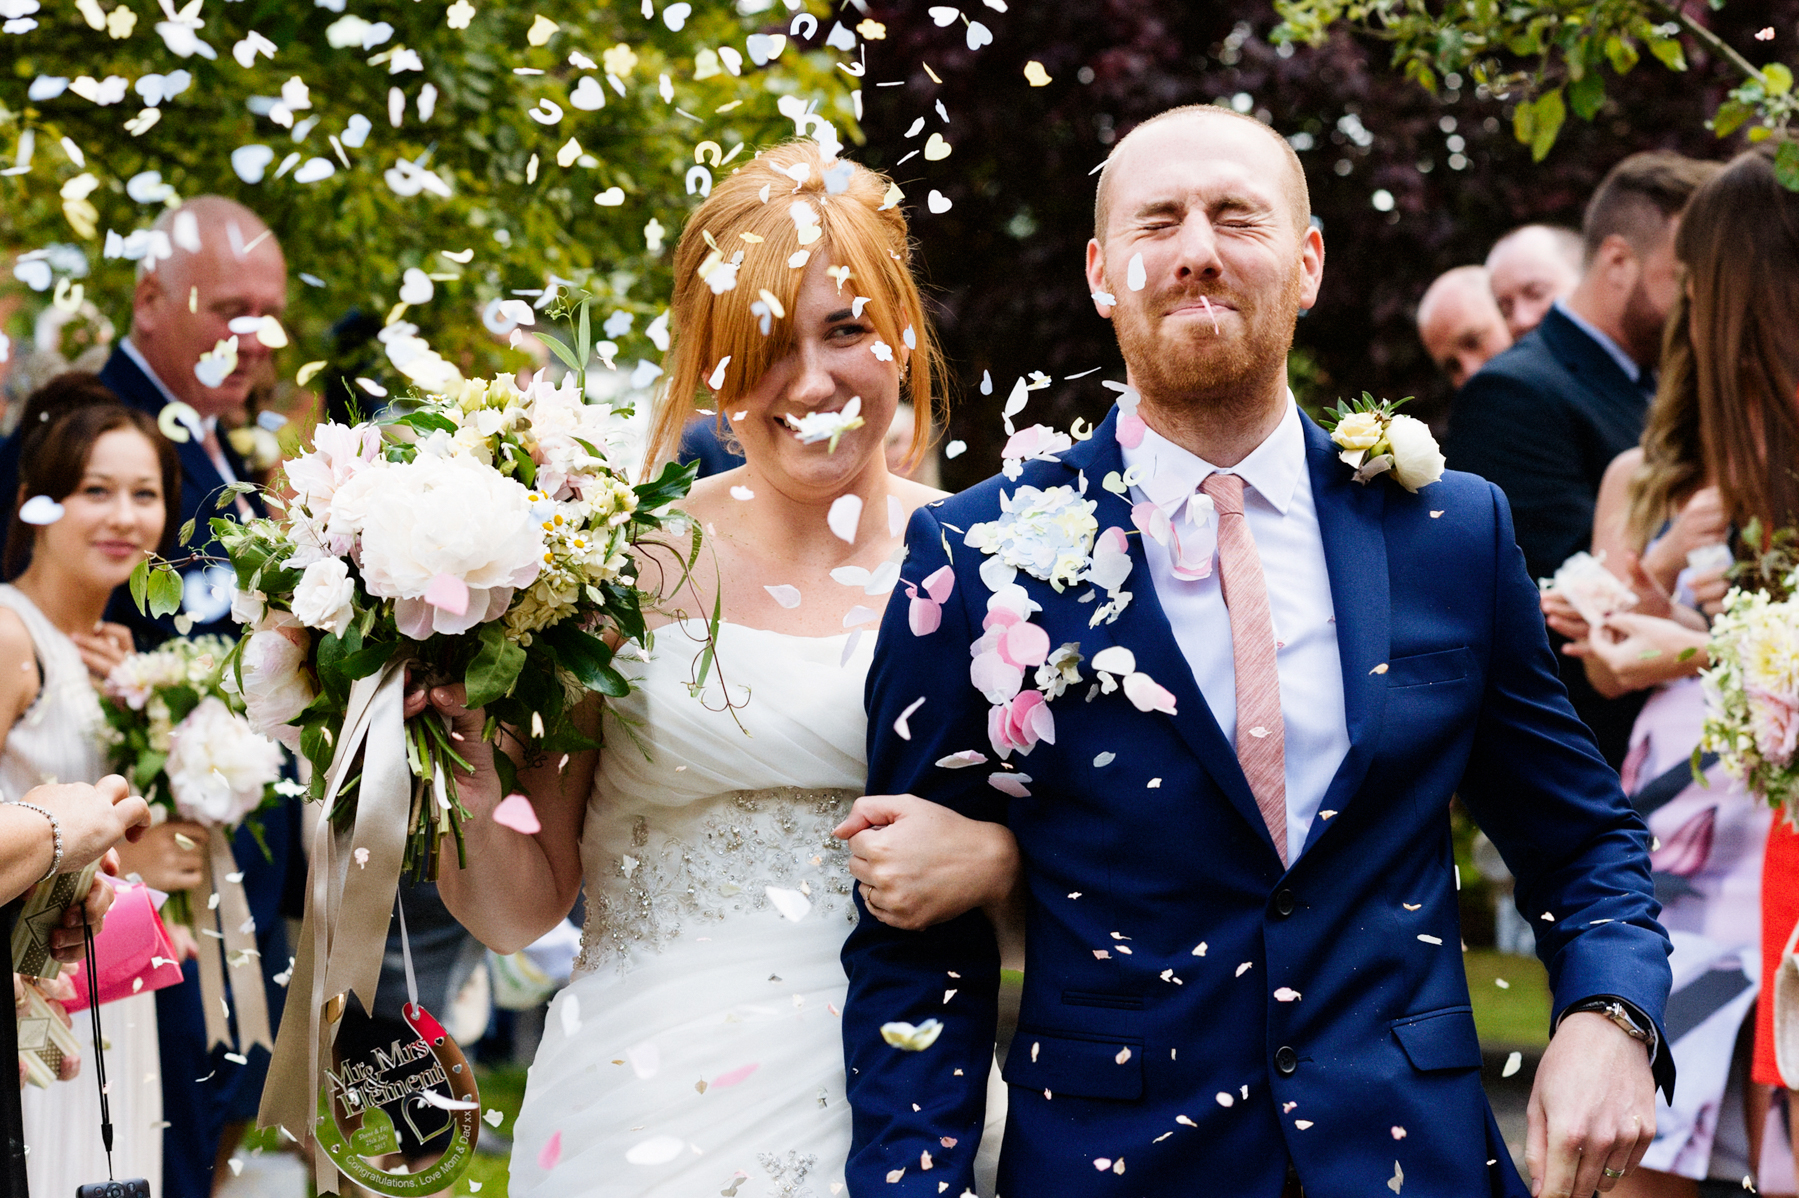 Birmingham wedding confetti shower